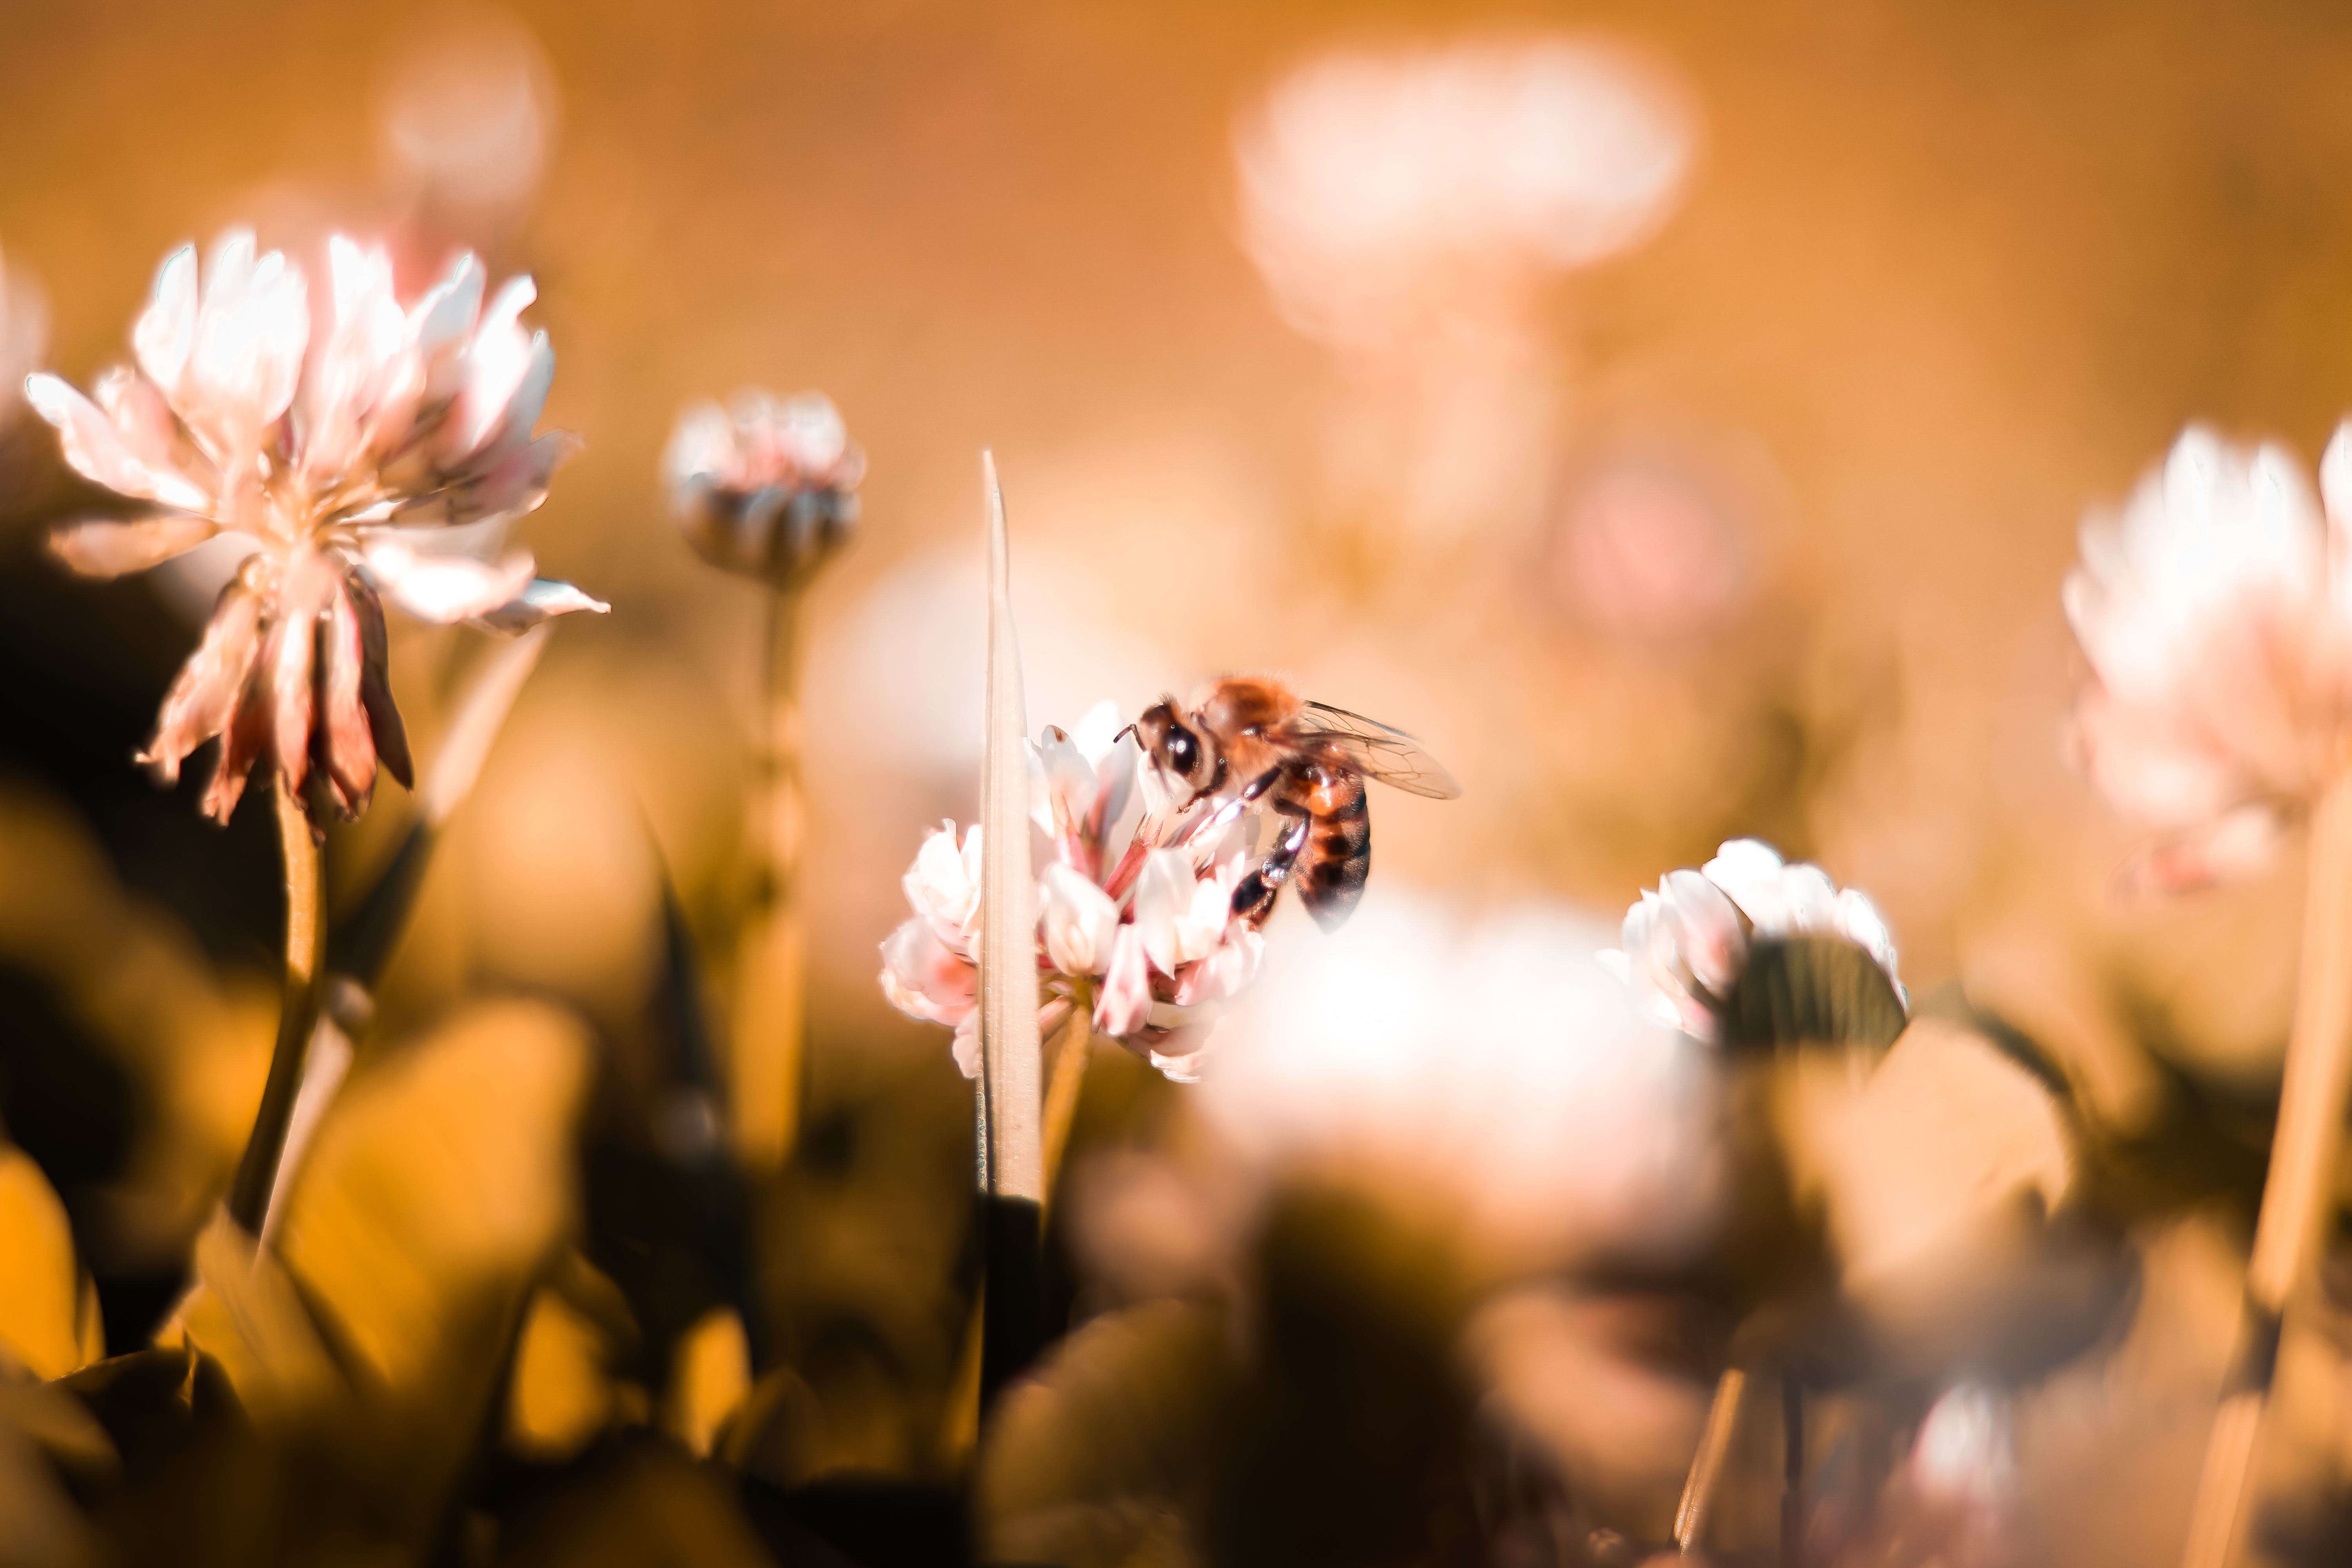 Macro Photography of Bee Perched On Flower